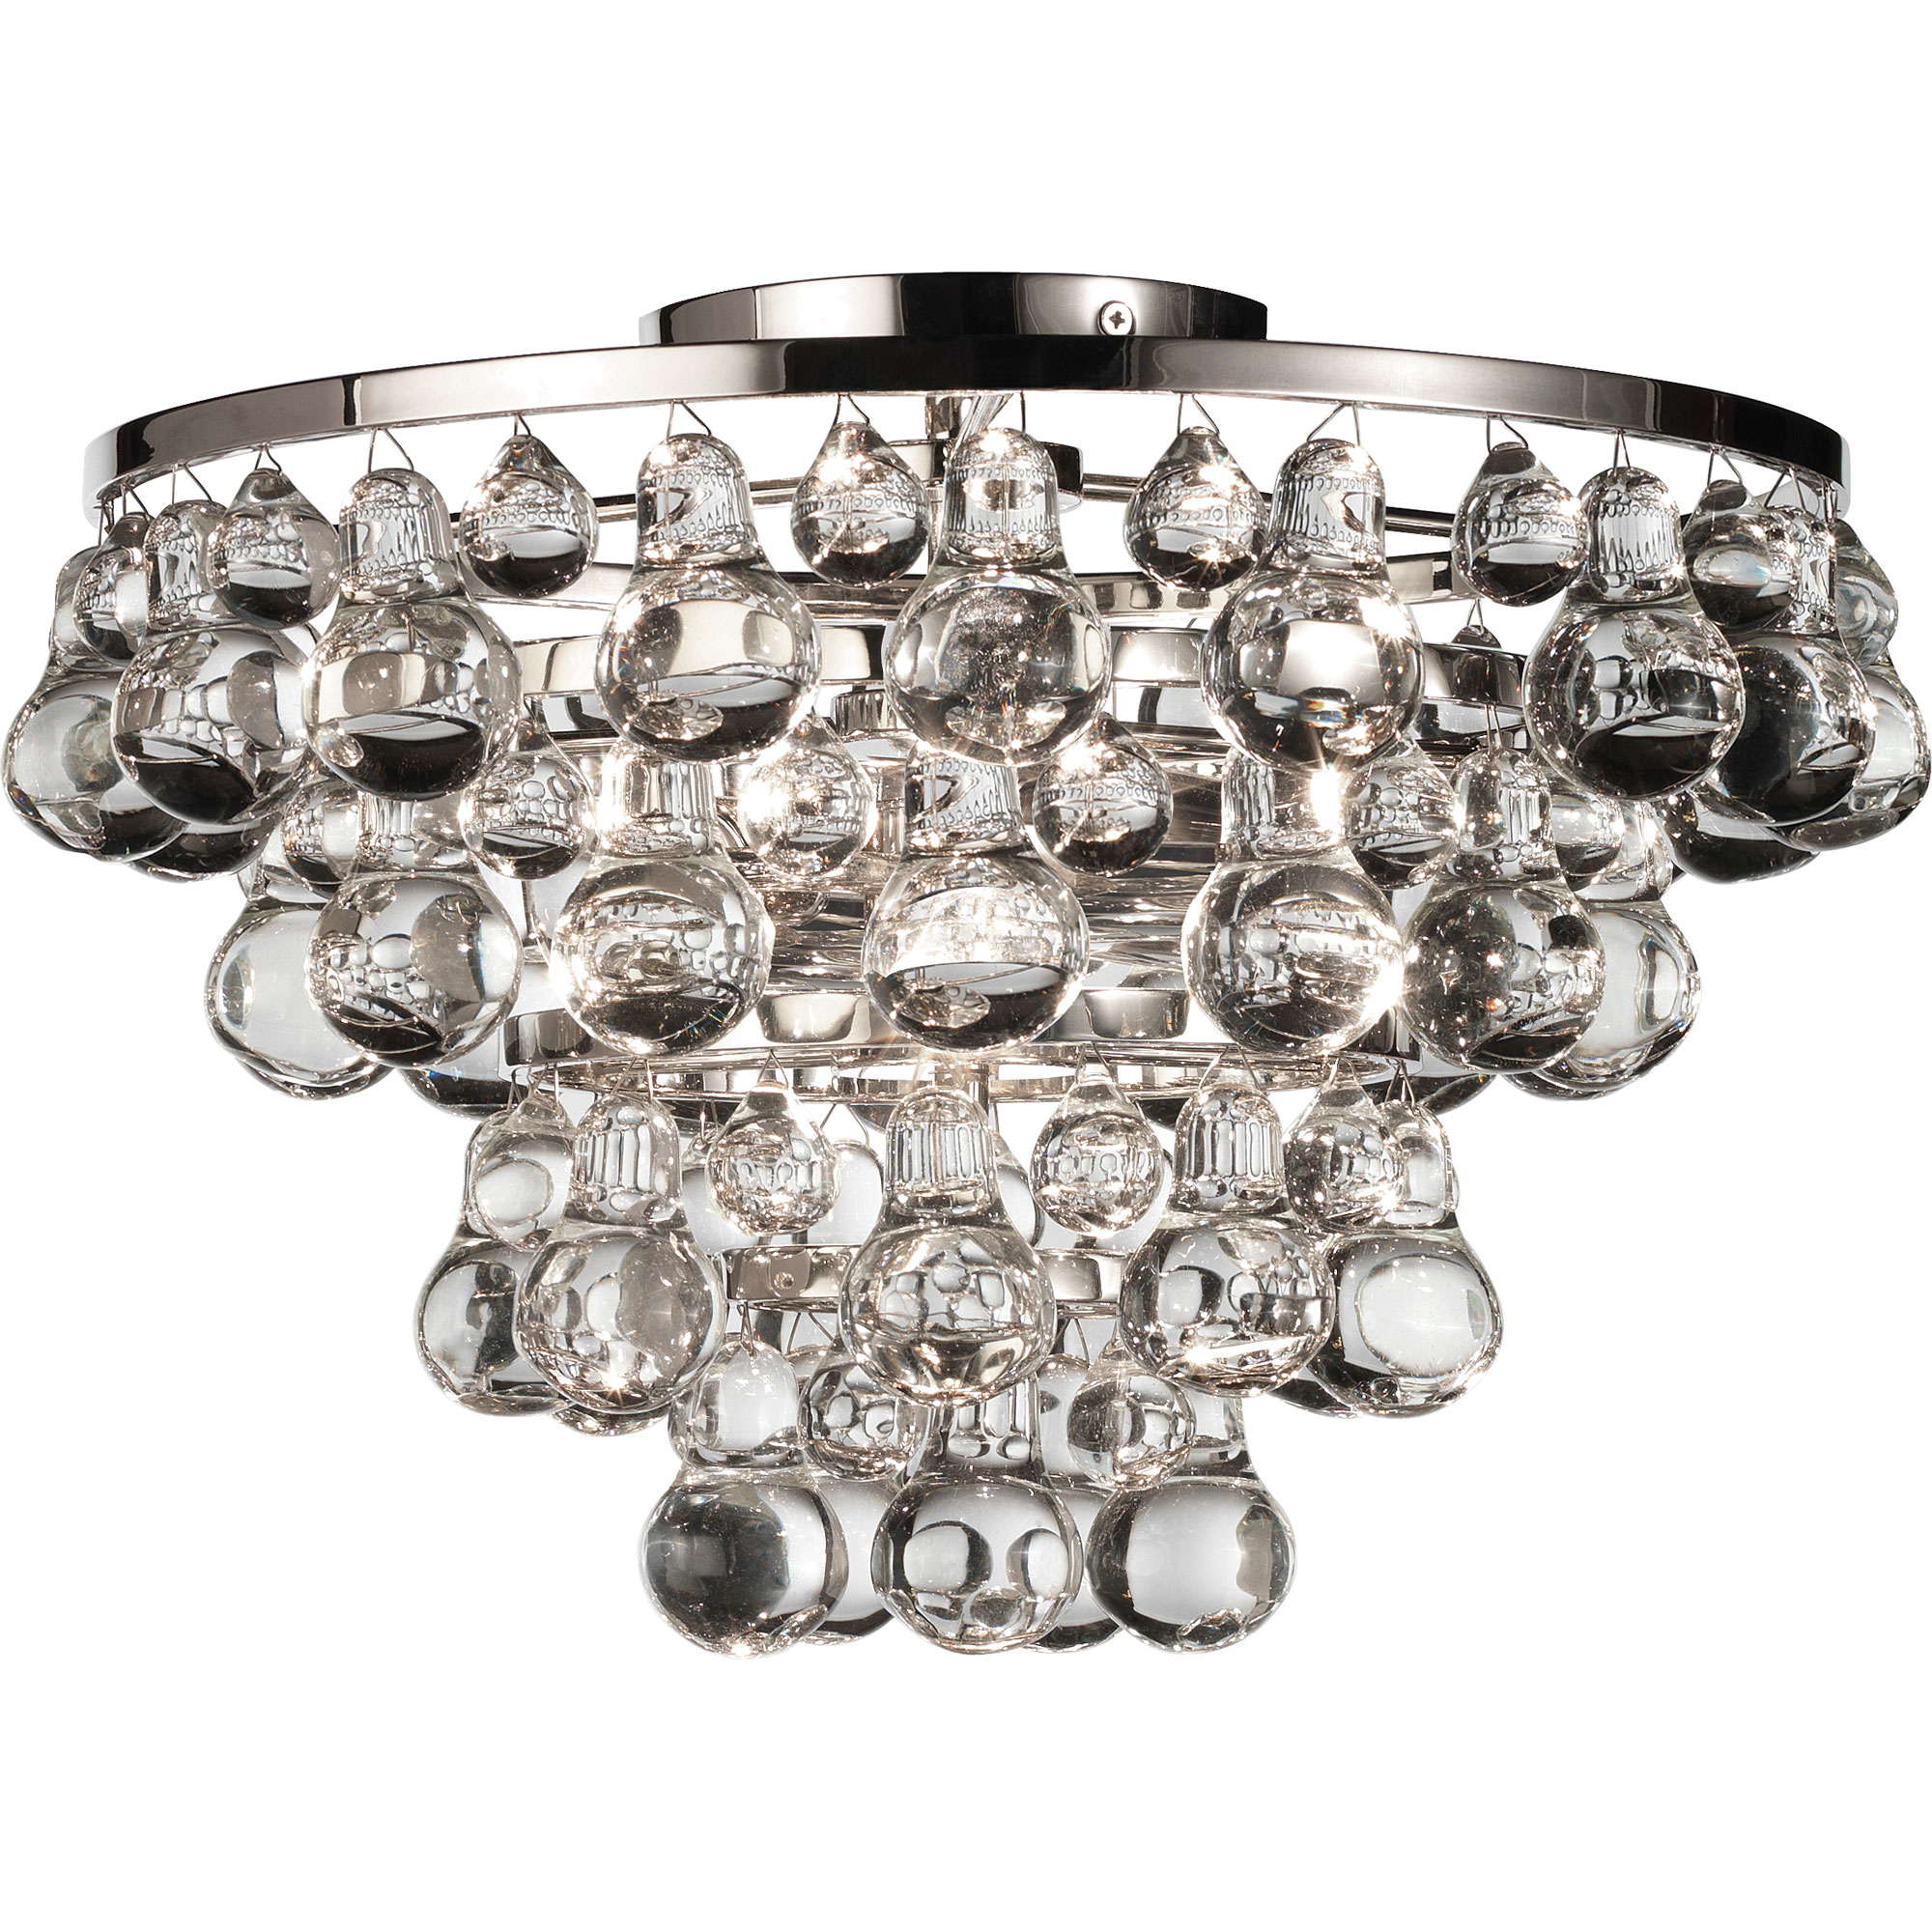 Bling Ceiling Light Fixture by Robert Abbey